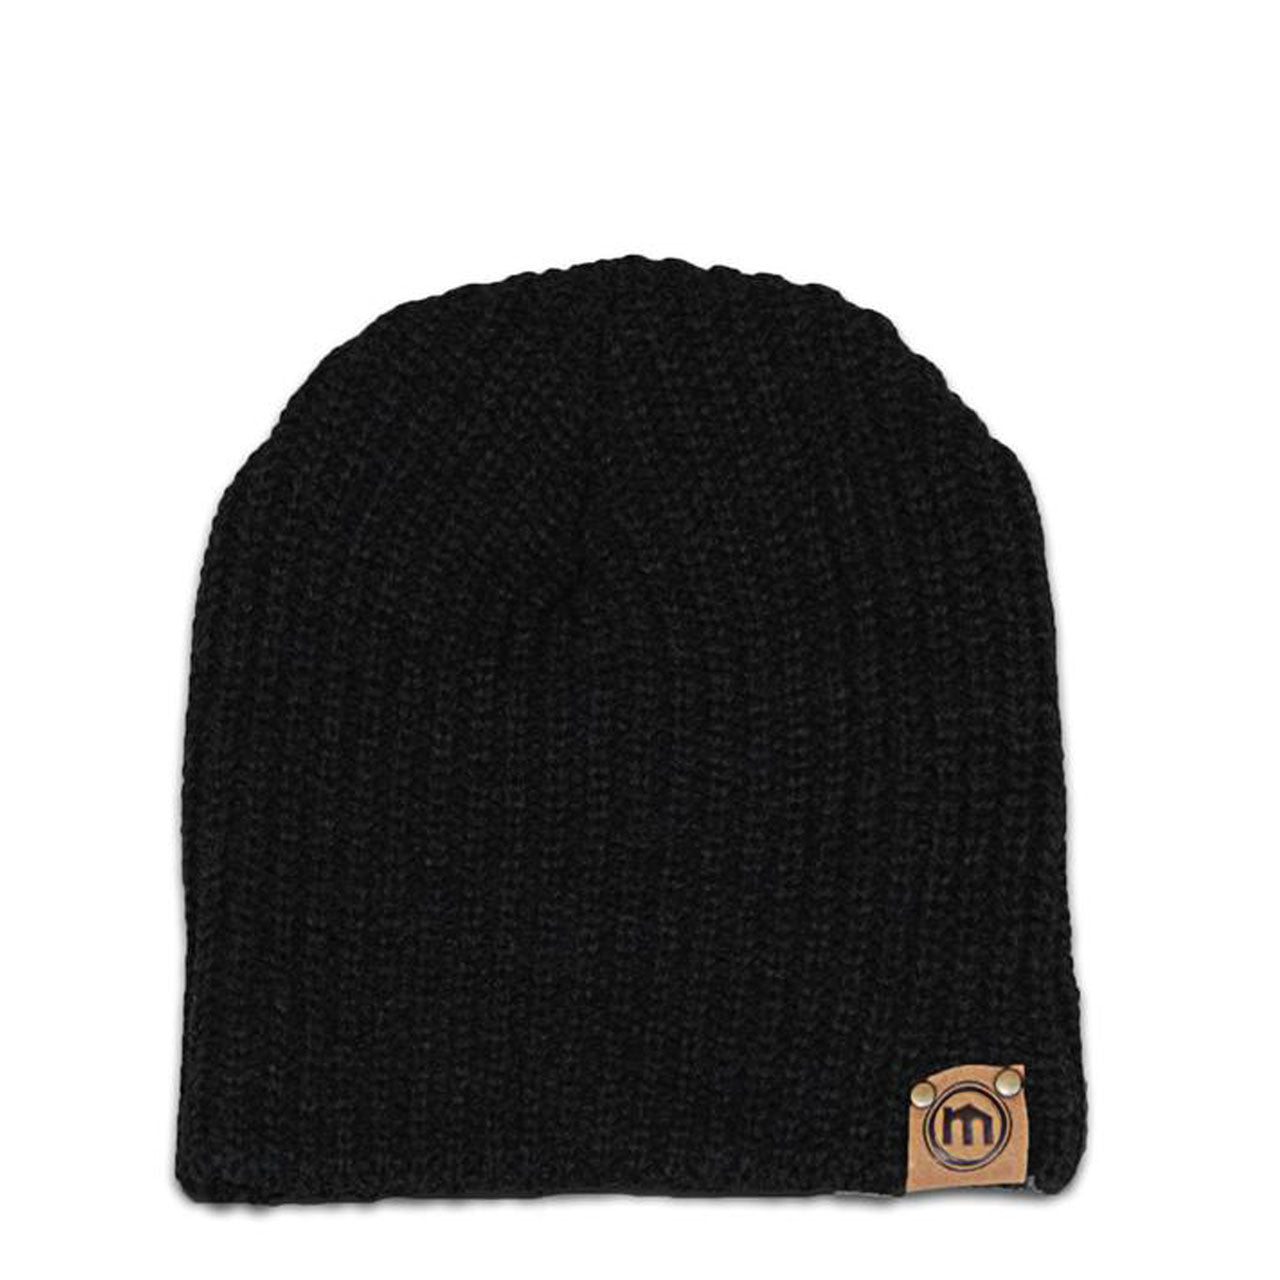 a60c2008e68 Mitscoots Outfitters - Black Lumberjack Knit Beanie